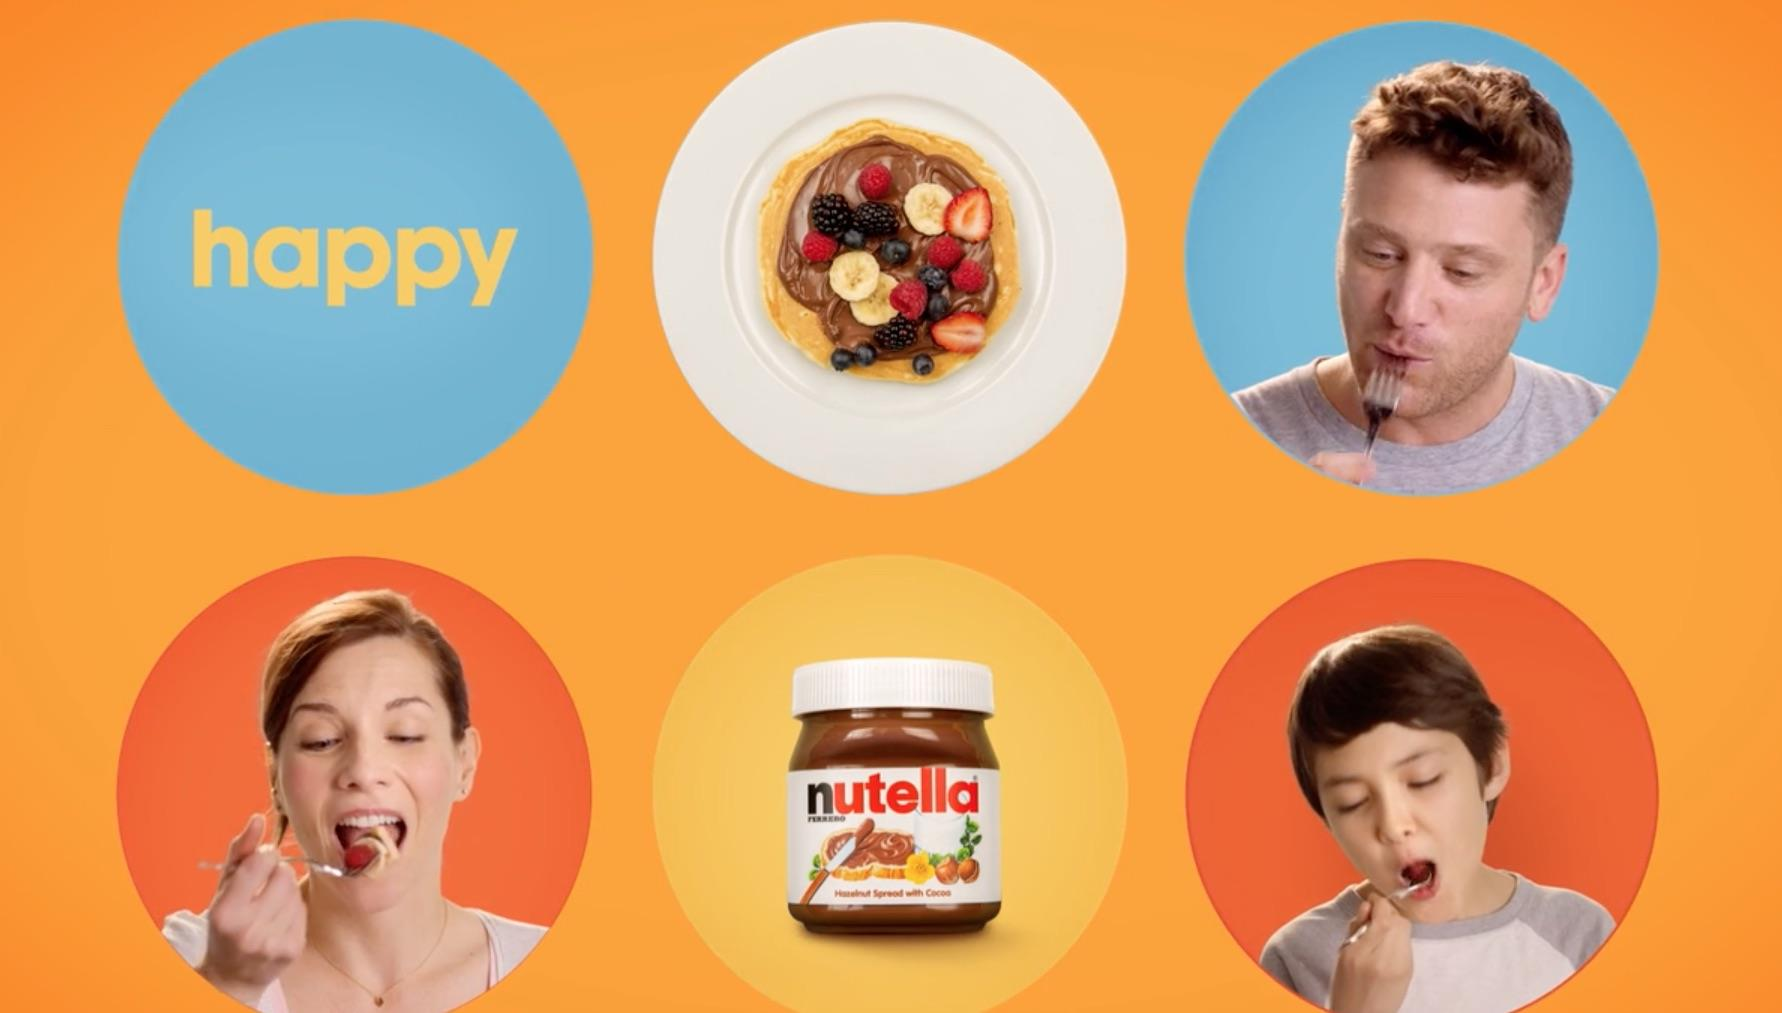 Nutella-bration